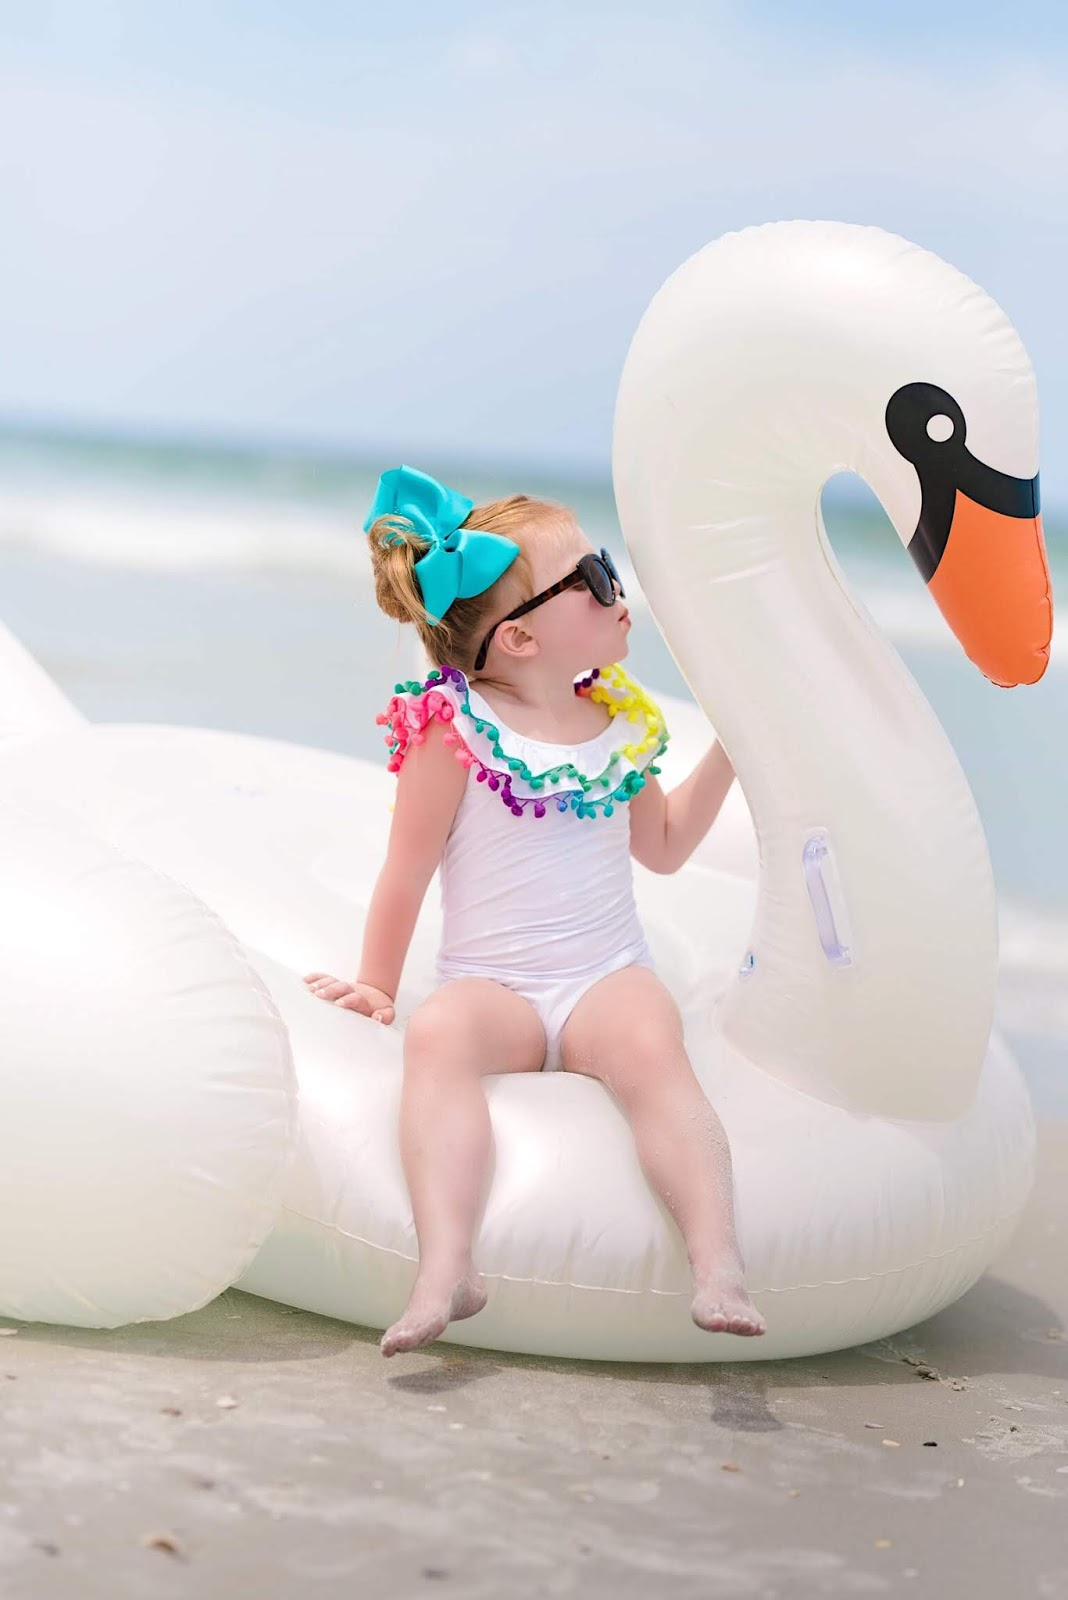 Toddler Girl's Pilyq Pom Pom Swimsuit - Something Delightful Blog